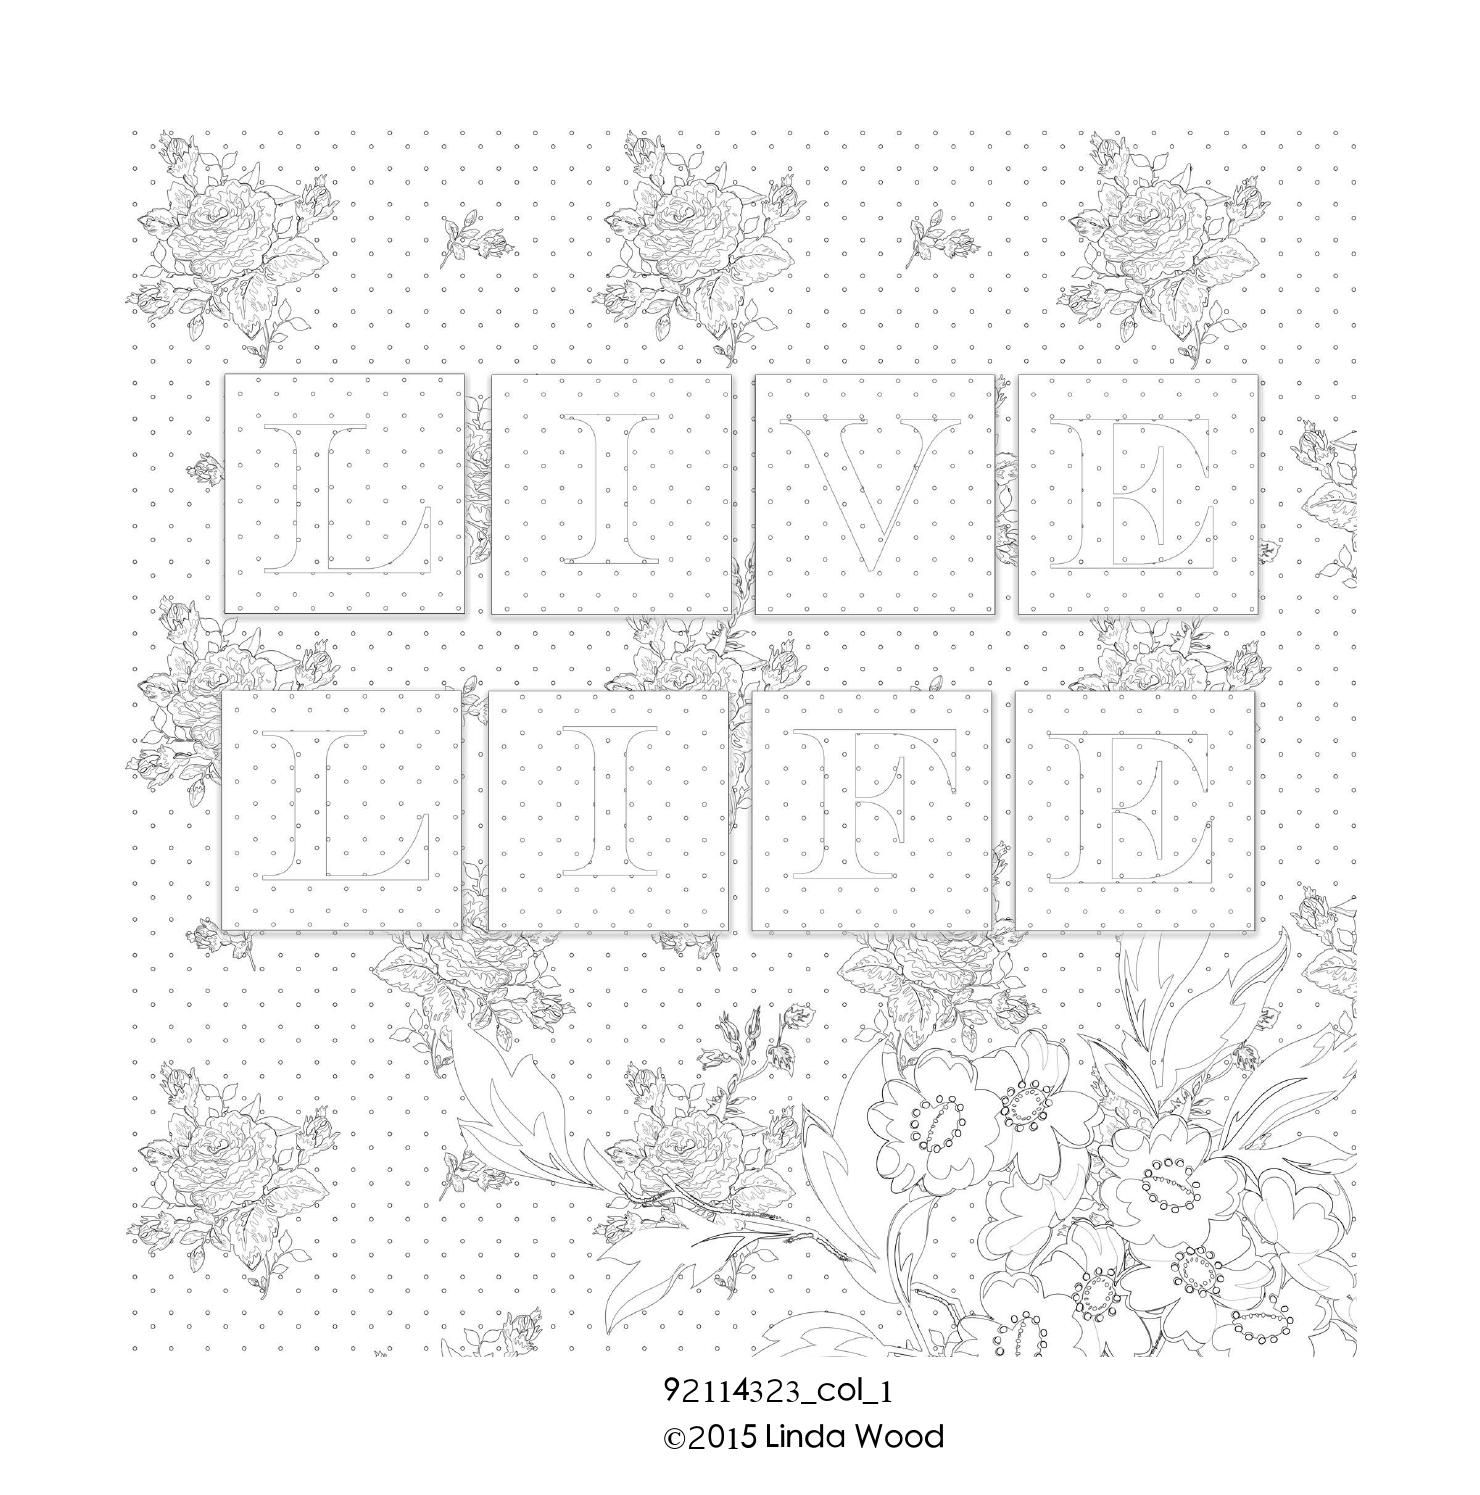 Flowers and pattern linda wood colouring book the oujays flower